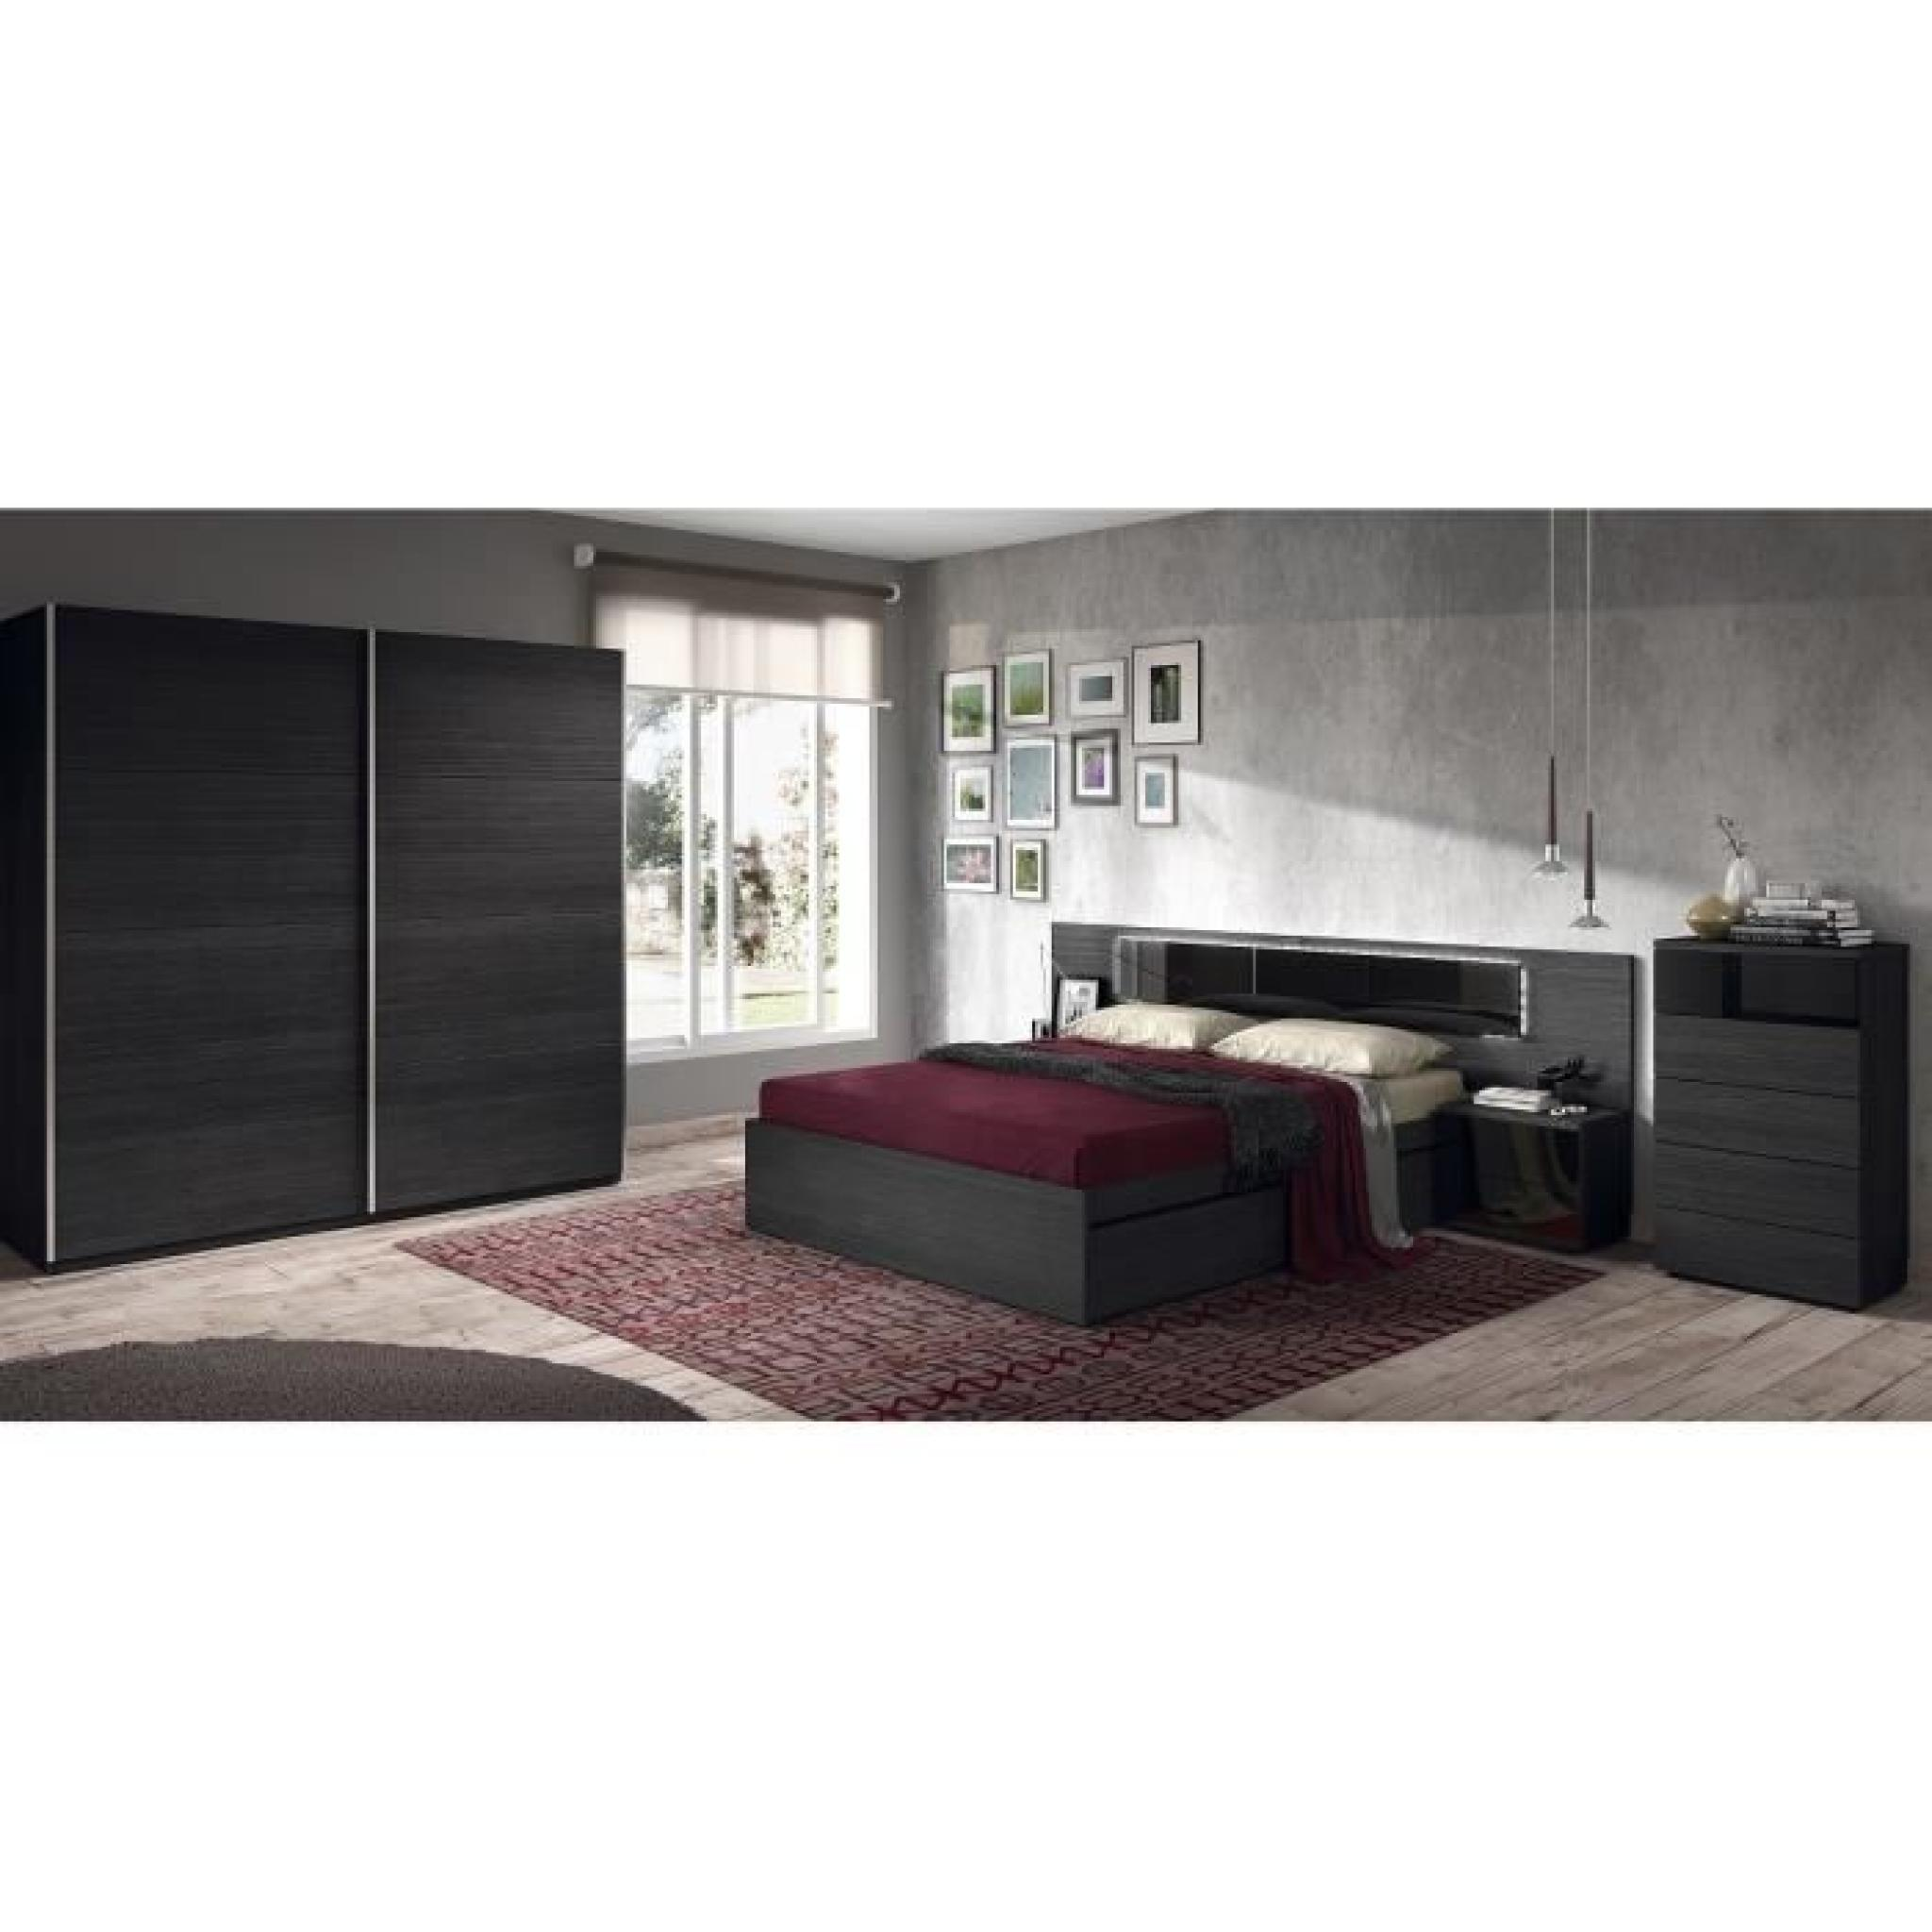 kiara t te de lit avec led 263 cm 2 chevets noir brillant et vein achat vente tete de lit. Black Bedroom Furniture Sets. Home Design Ideas